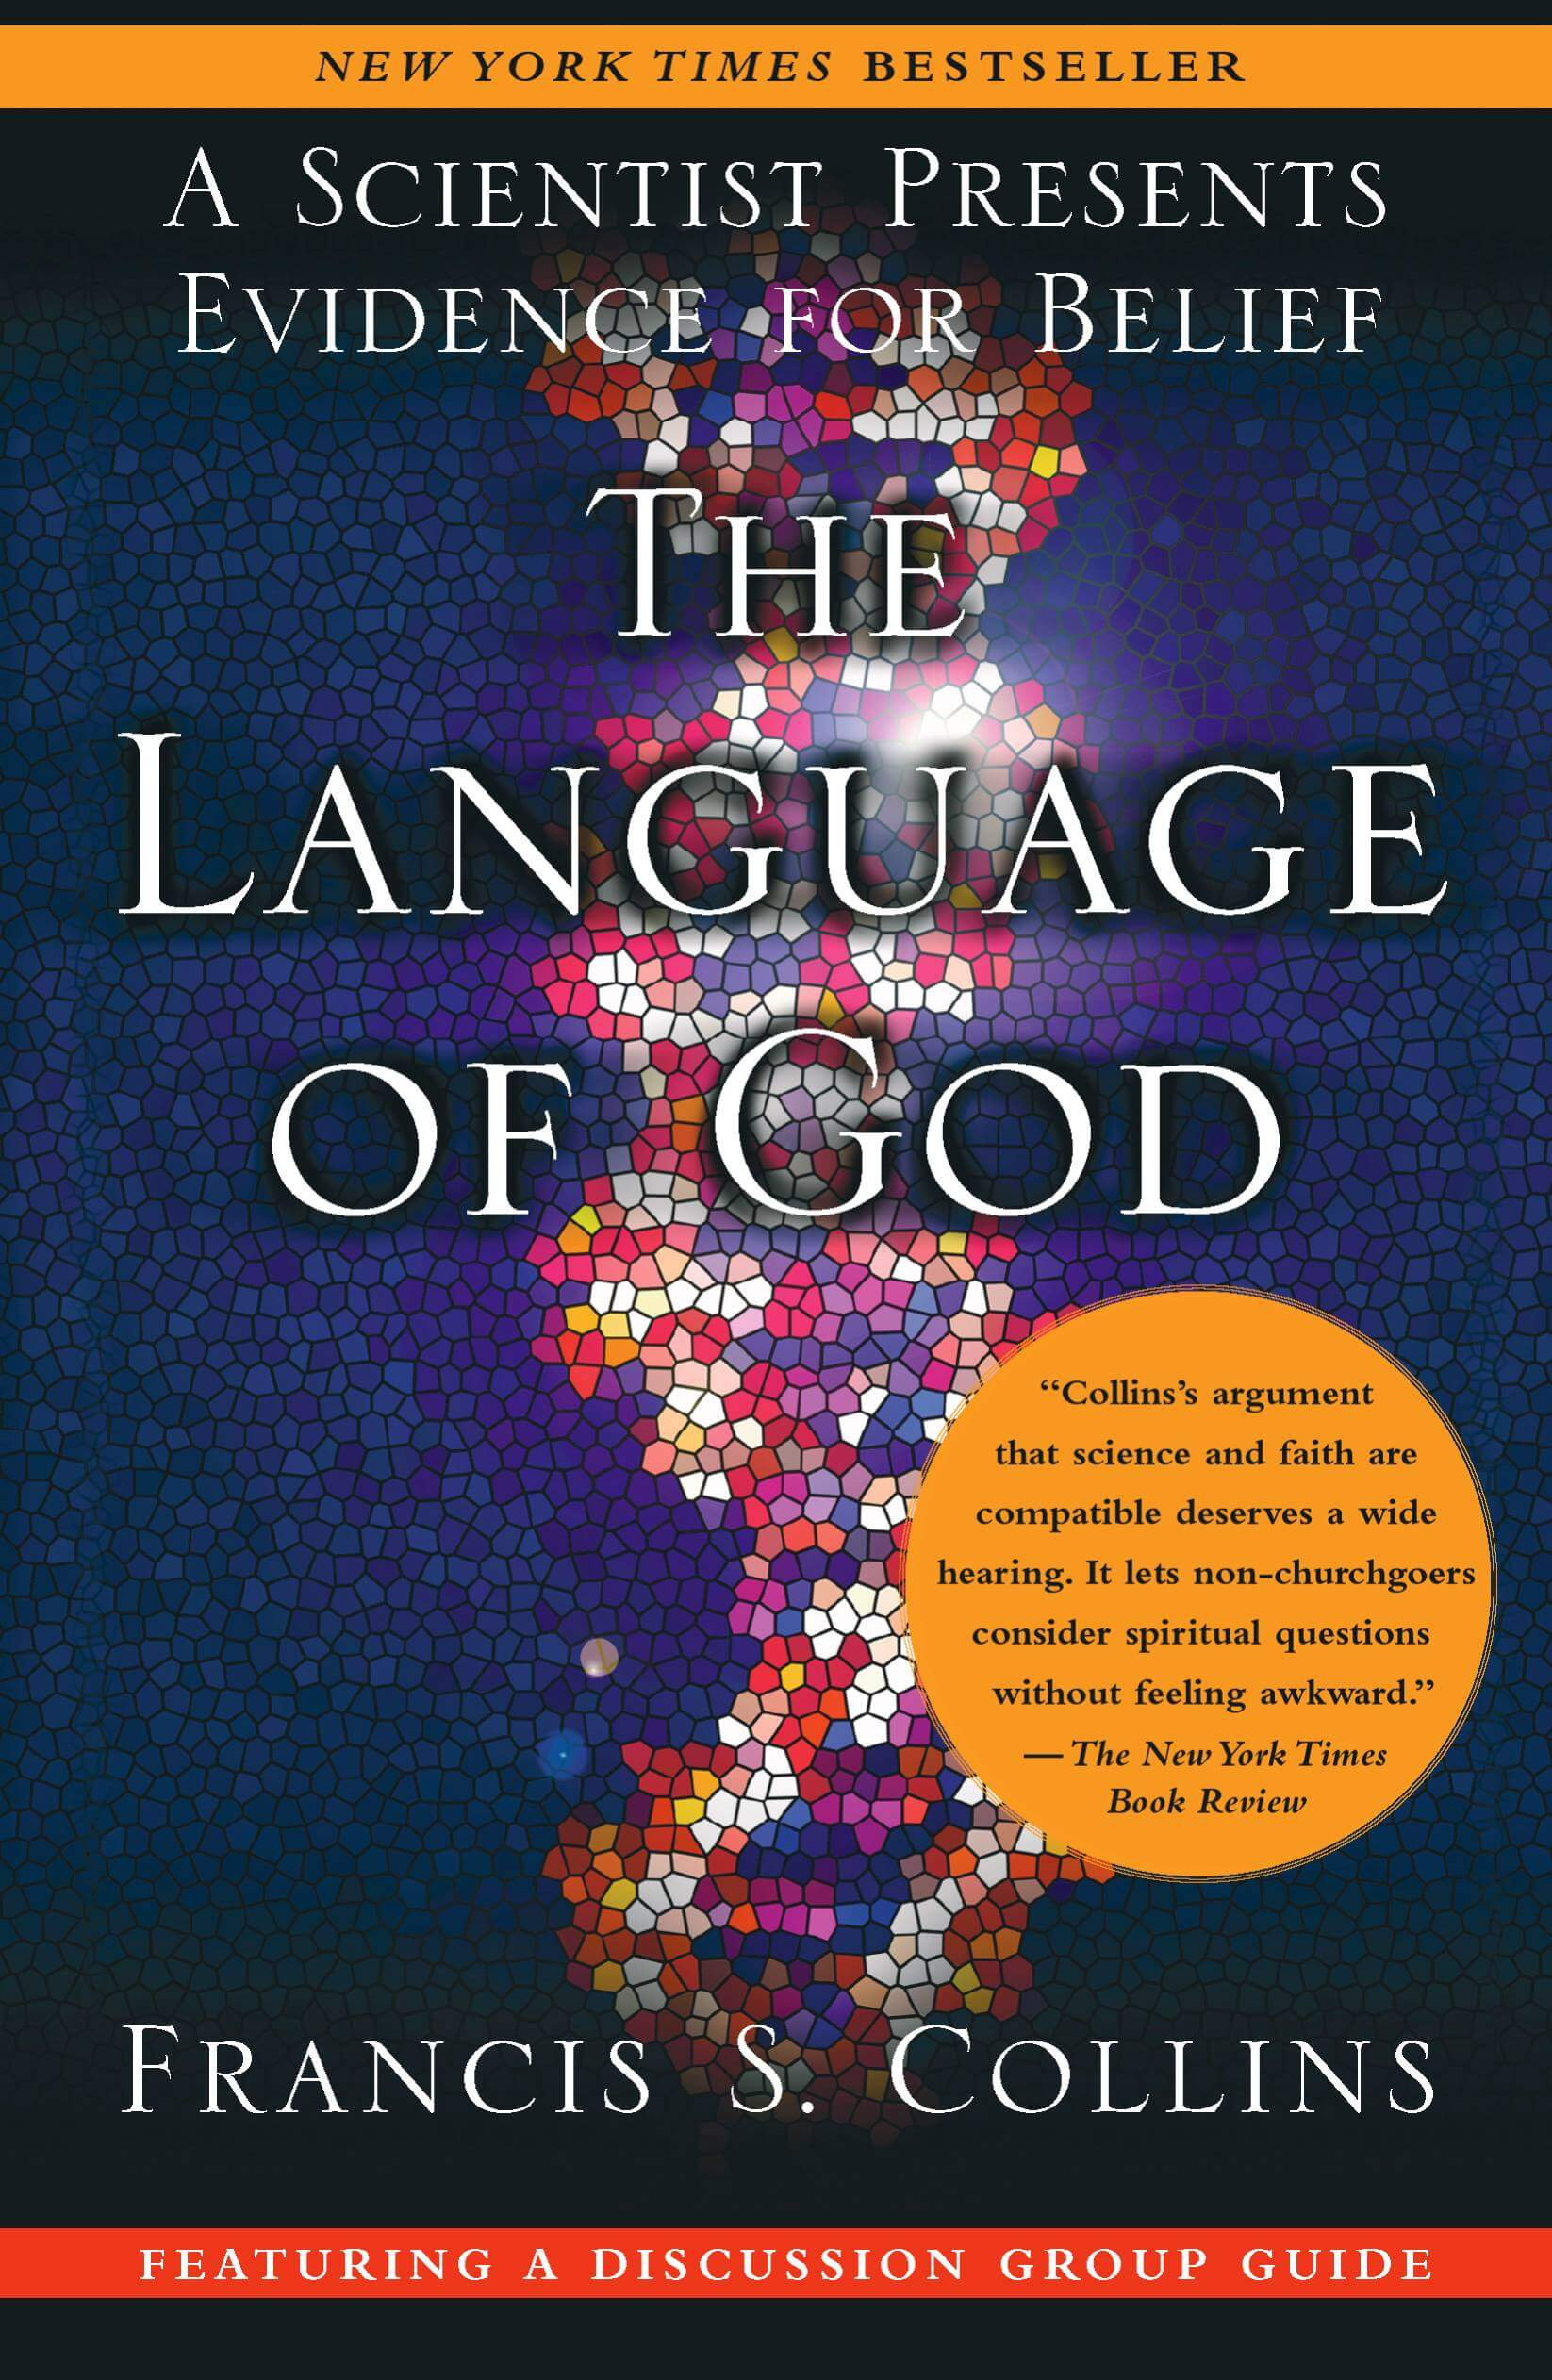 Image of Language of God book cover